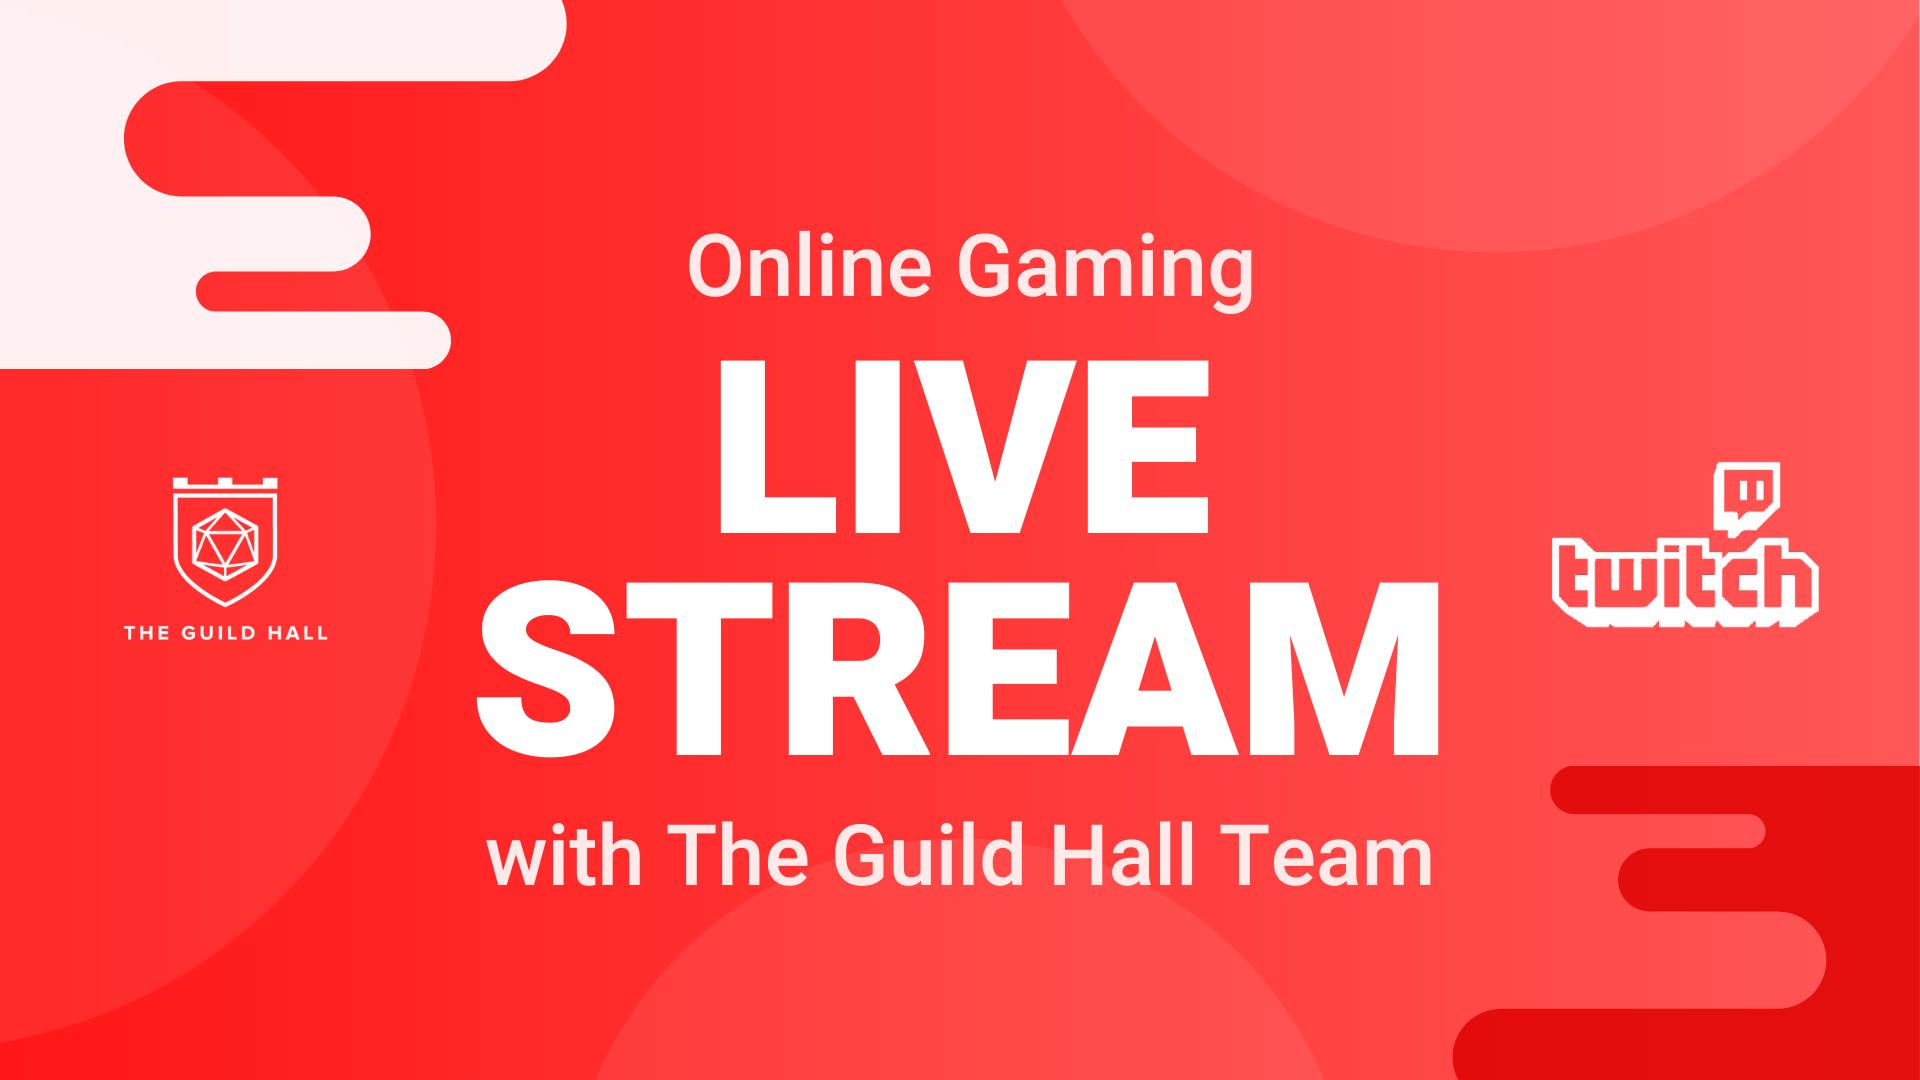 Live Stream with The Guild Hall Team